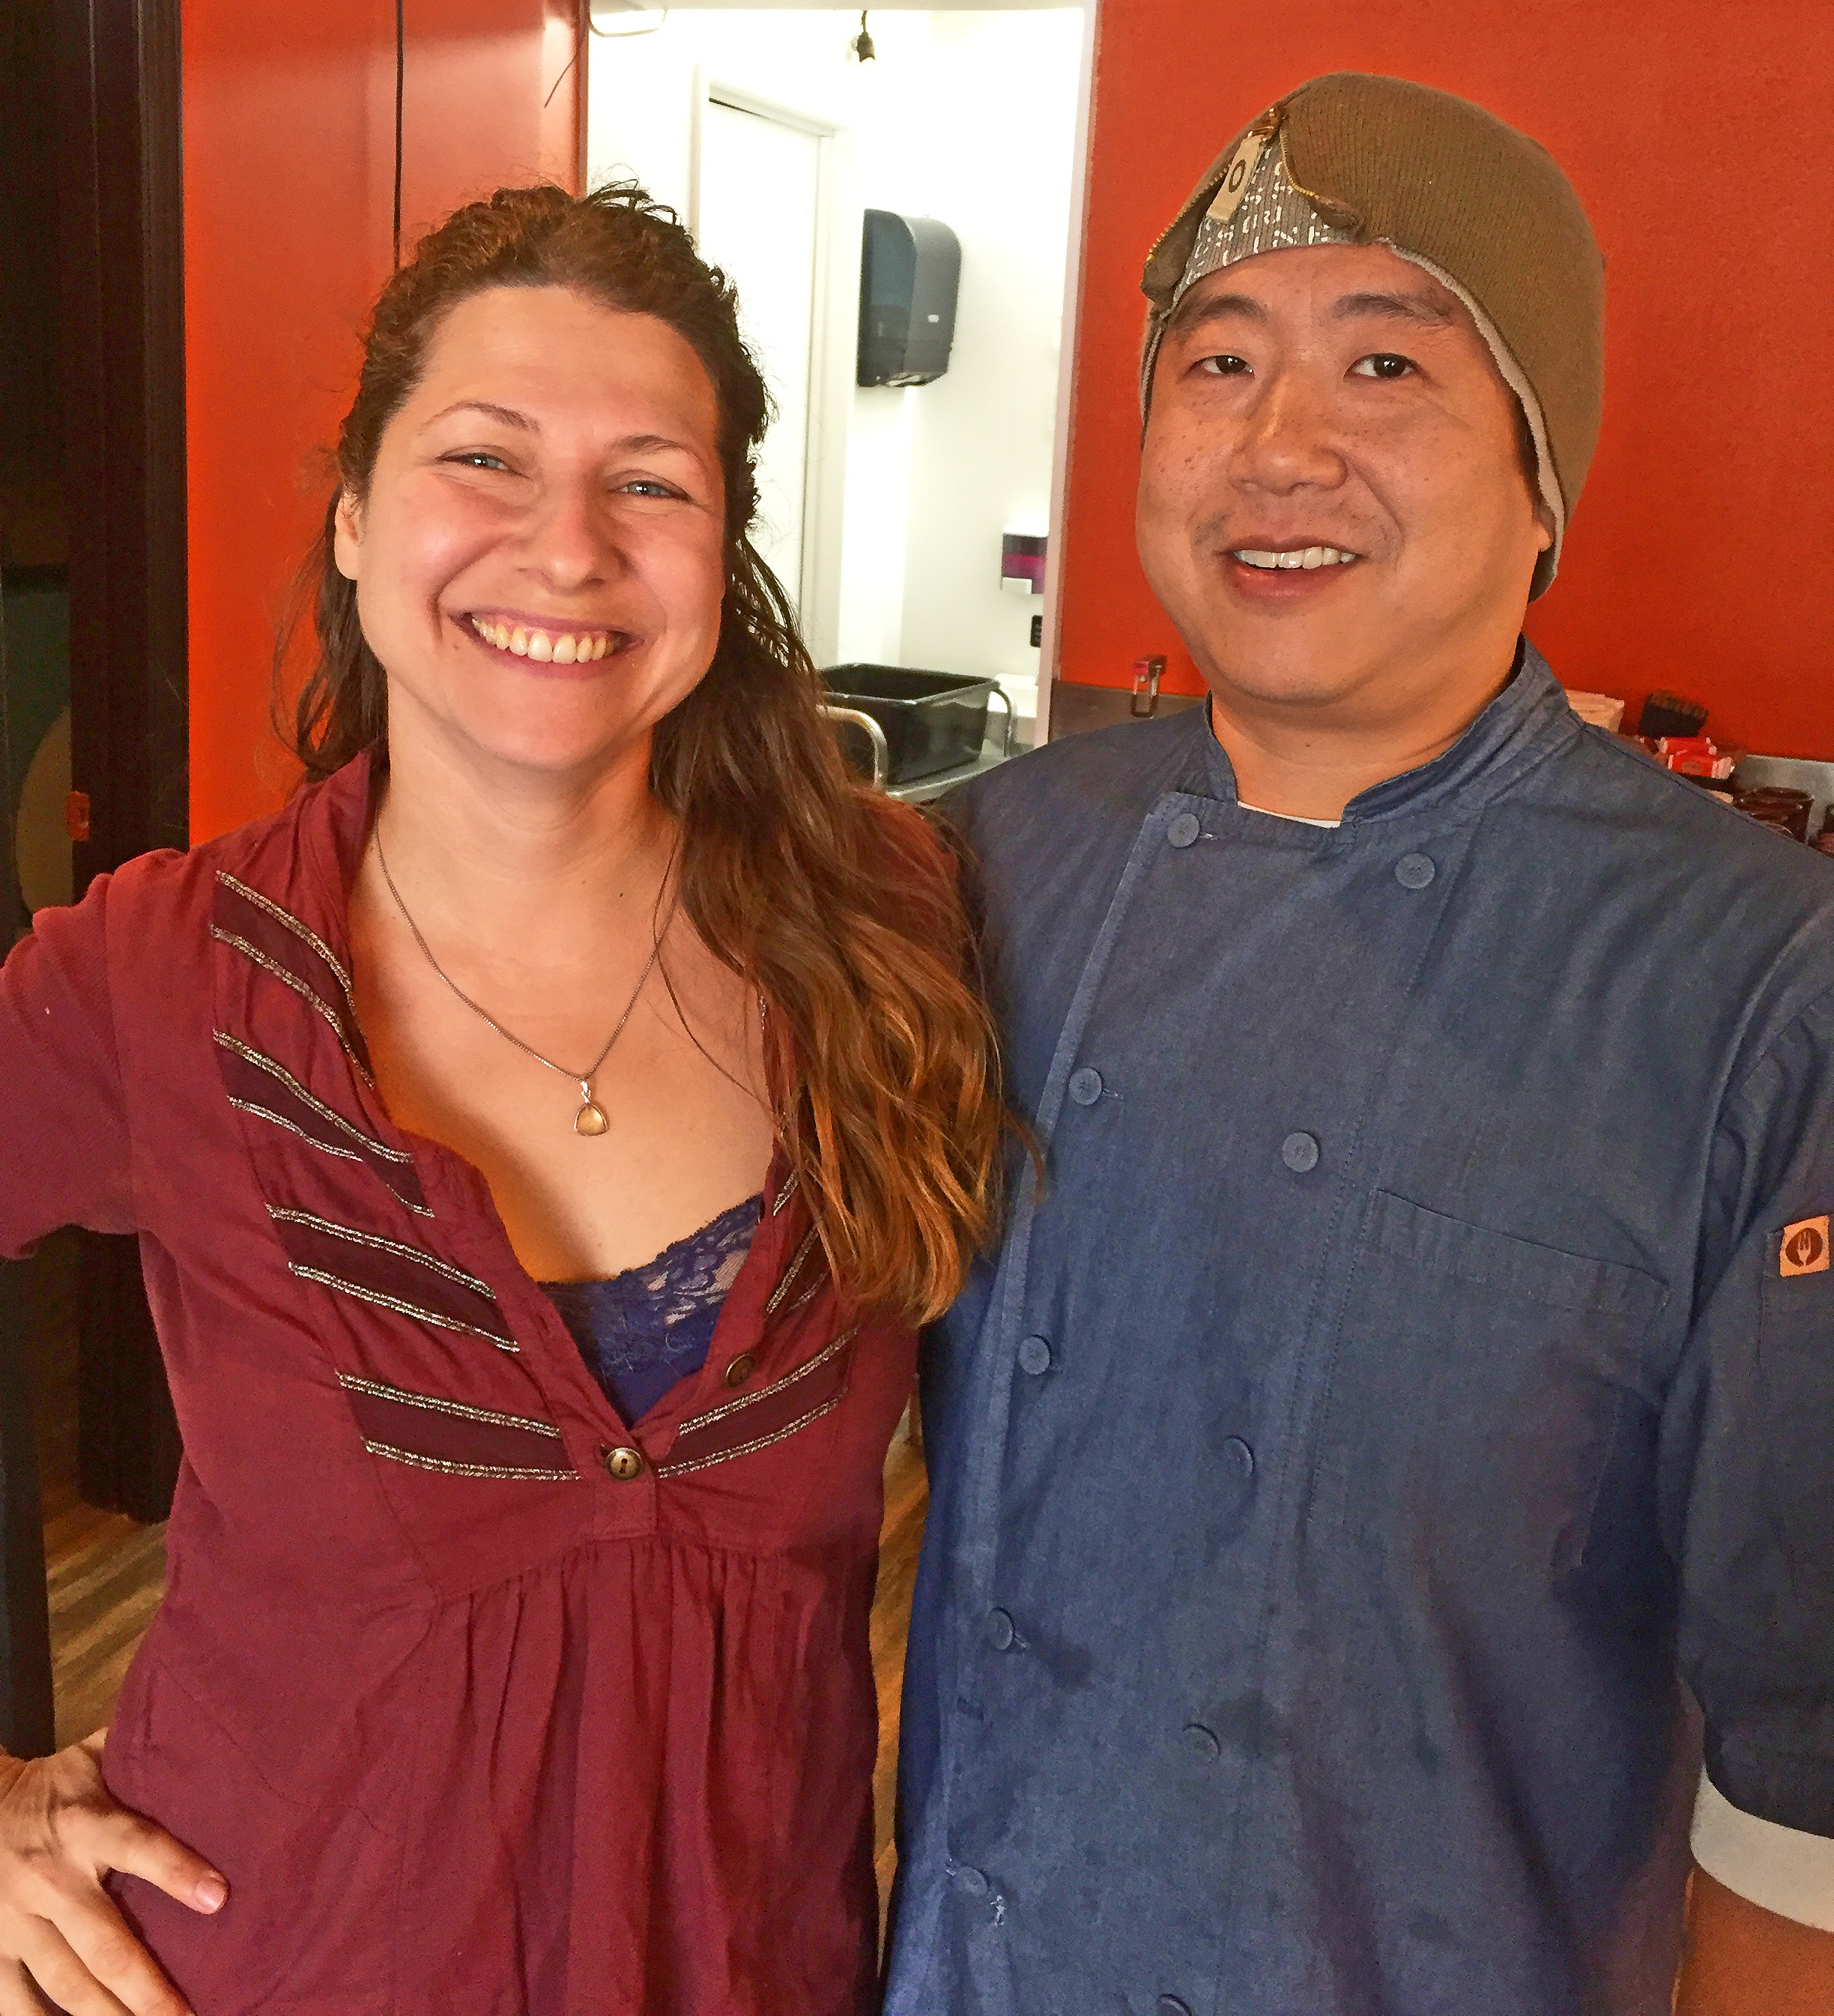 Foo Kitchen owner George Pan and his manager and hostess, Naomi.